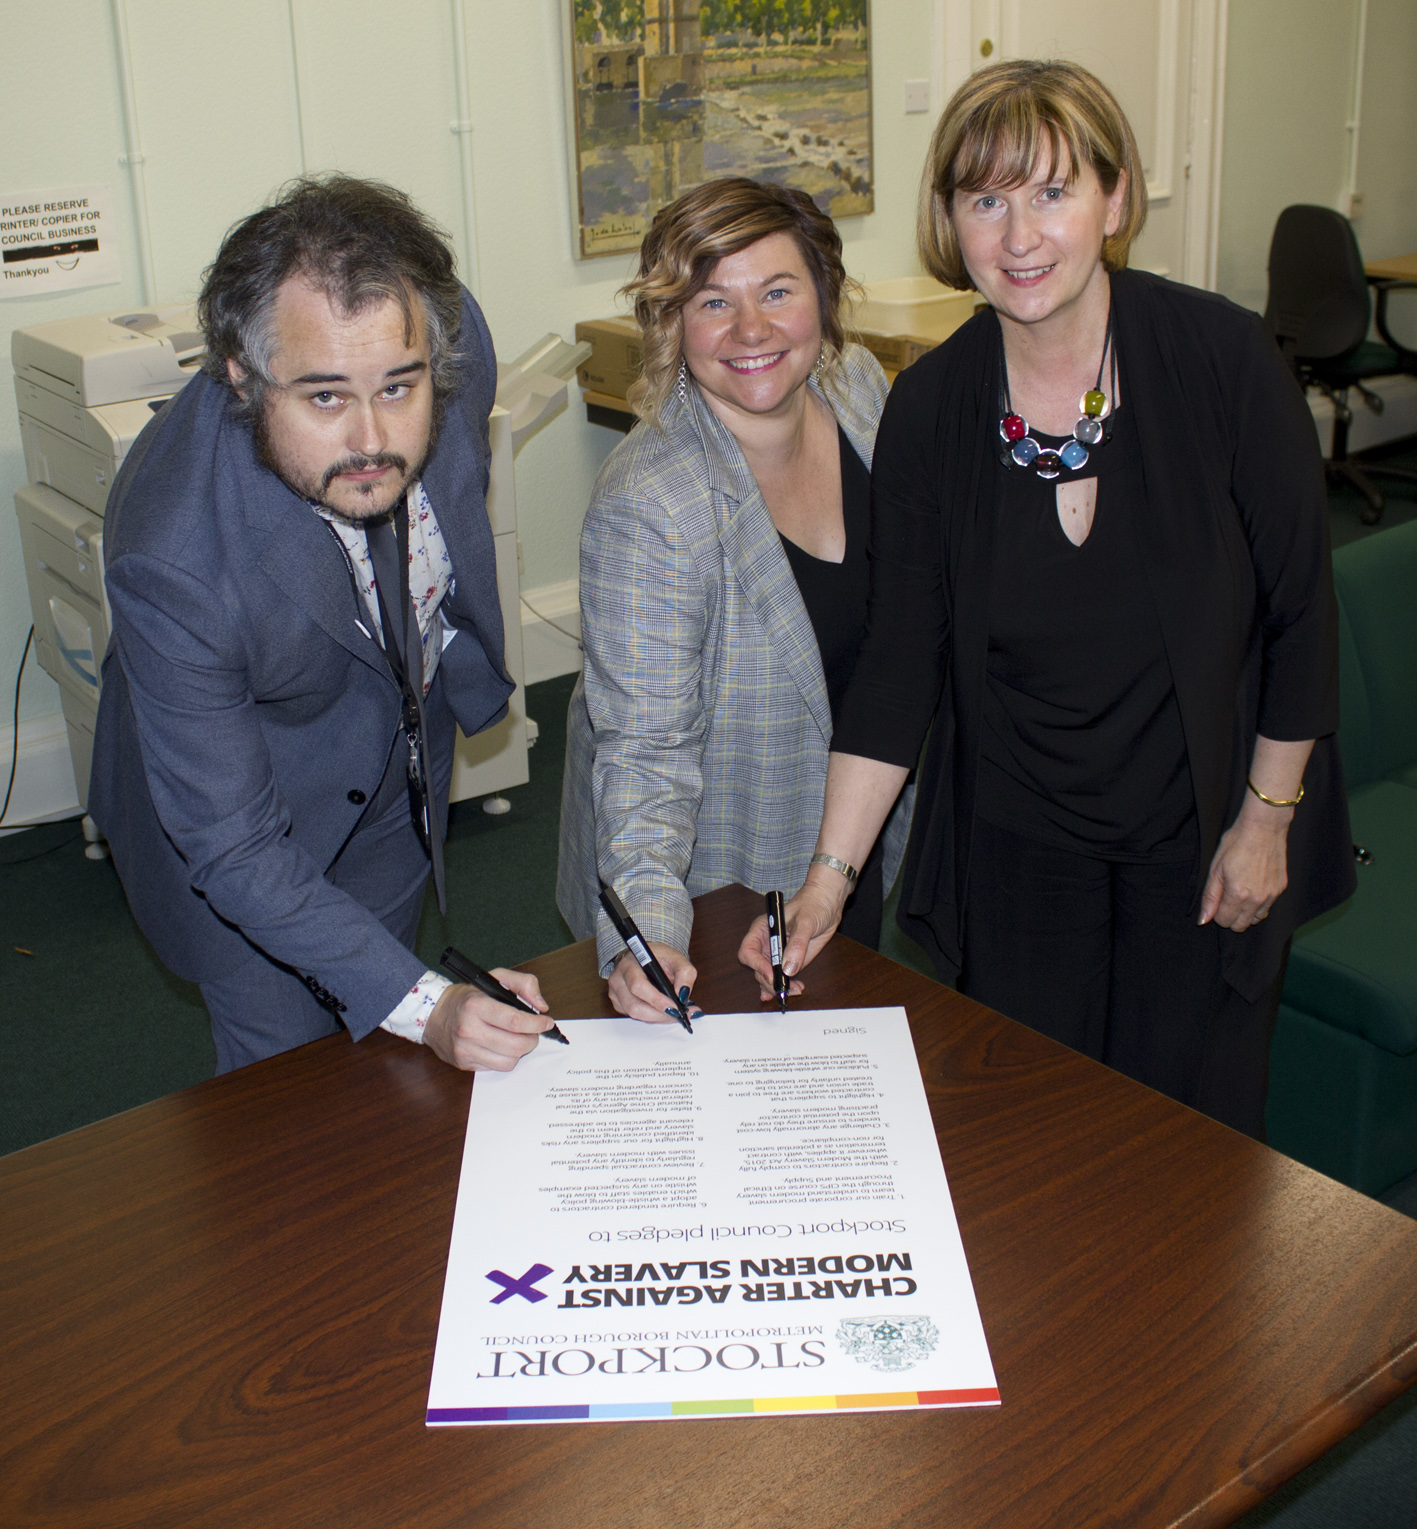 Stockport Council launches modern slavery charter